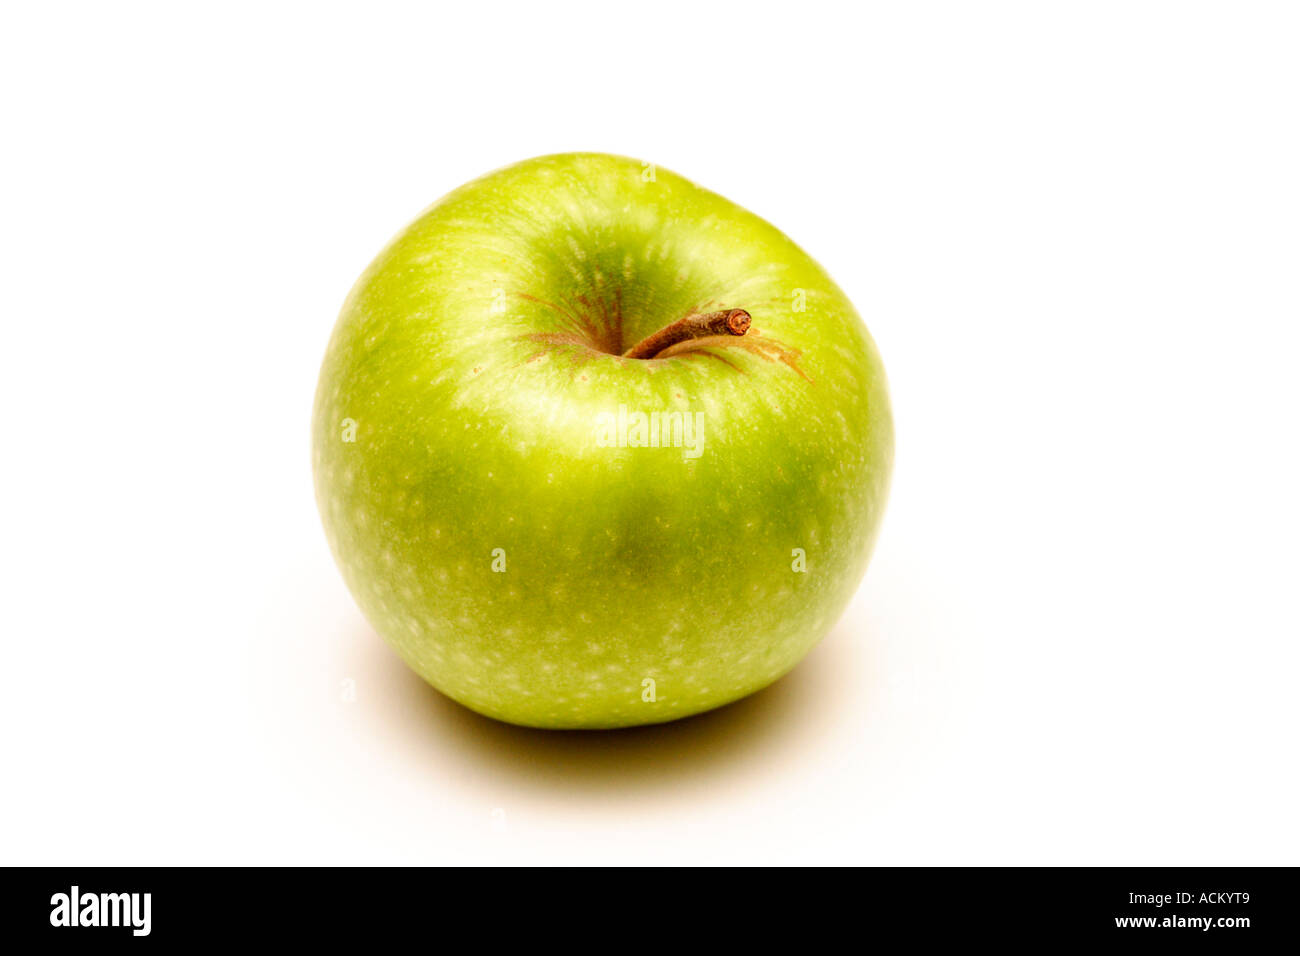 Green apple on a white background - Stock Image